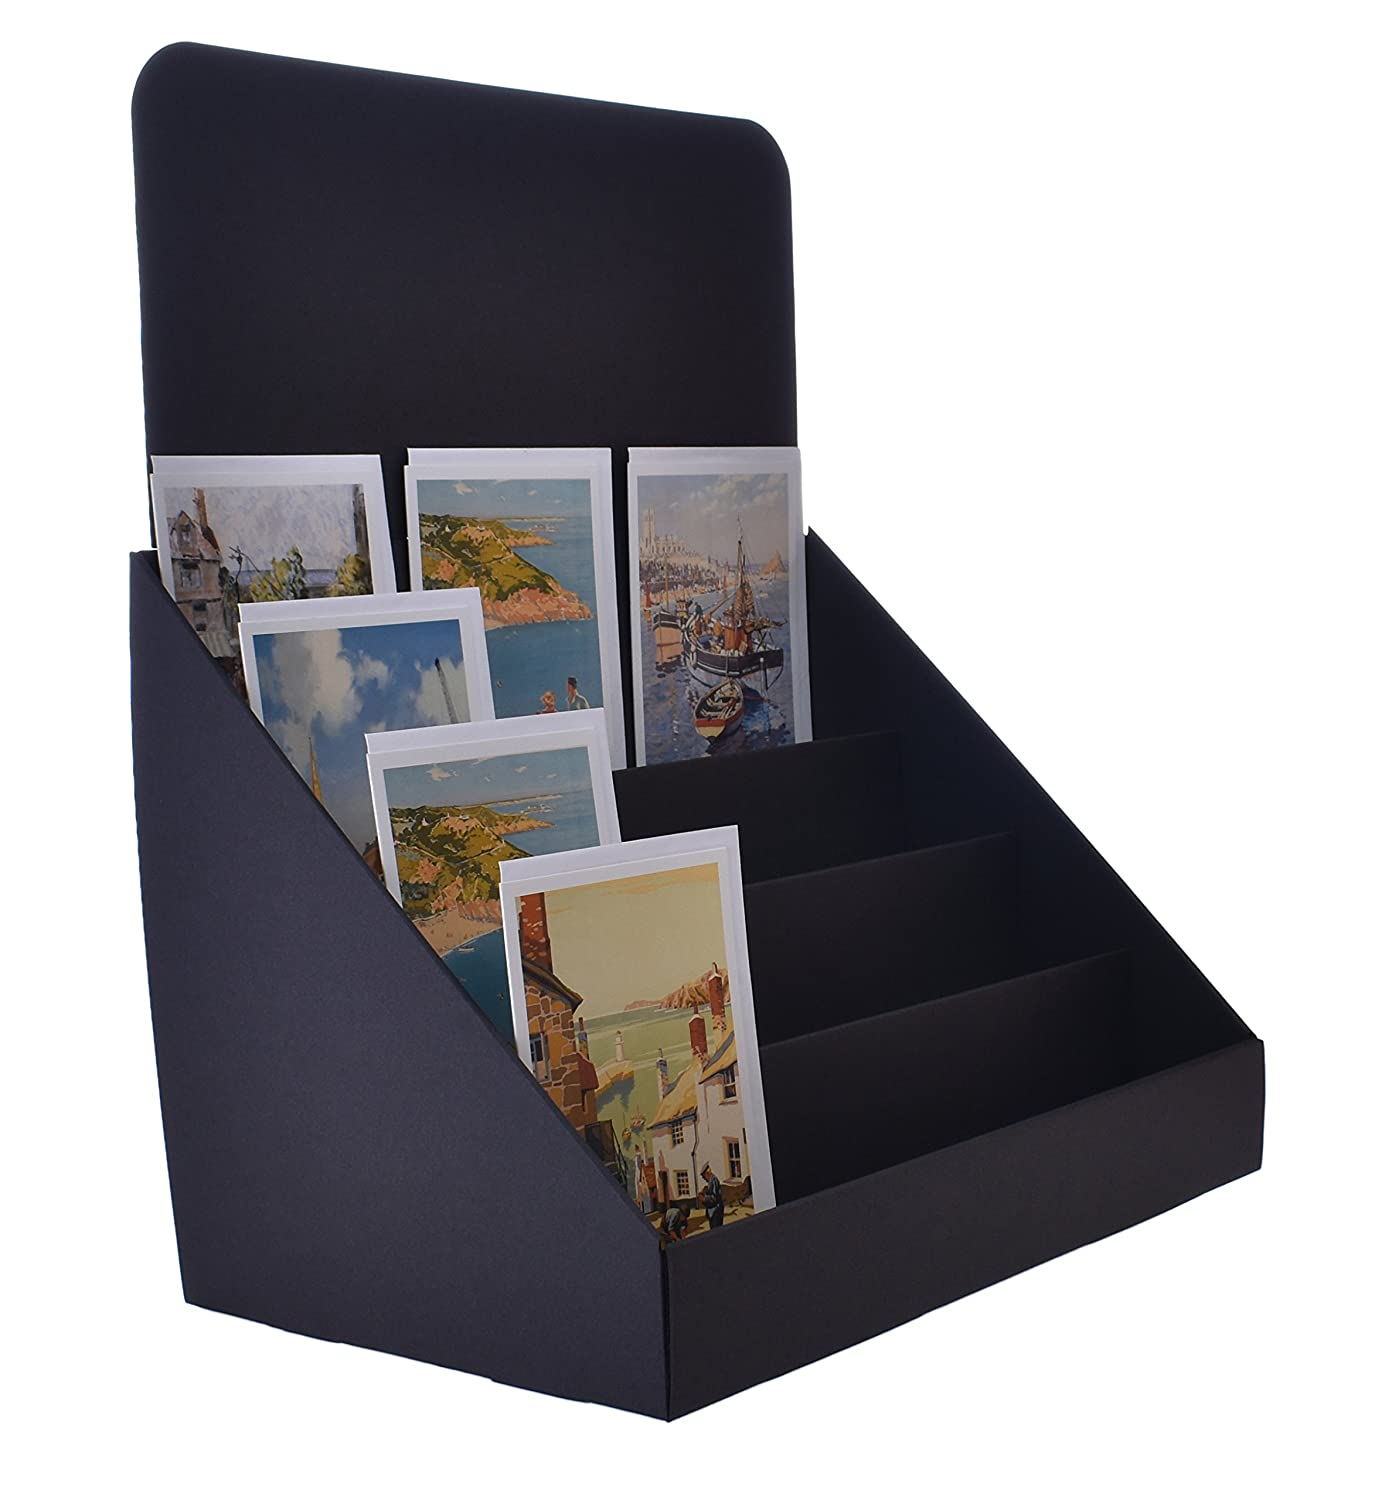 Stand Store 145 Inch 4 Tier Cardboard Greeting Card Display Stand